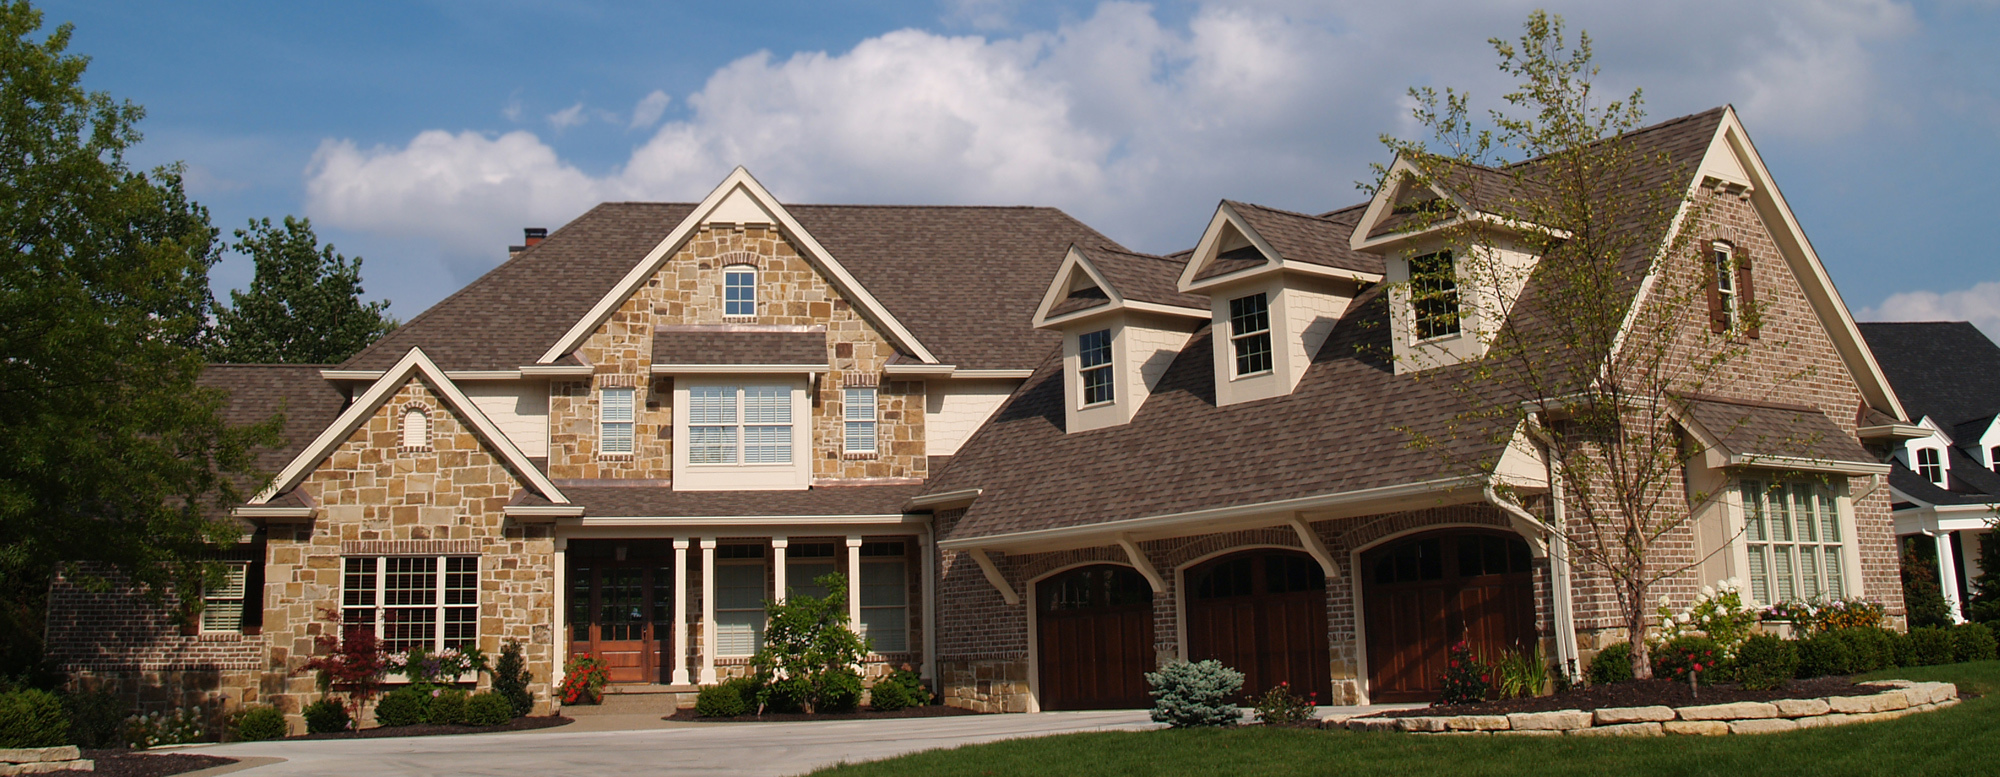 Fantastic roofing services by contractors in Moscow Mills, MO